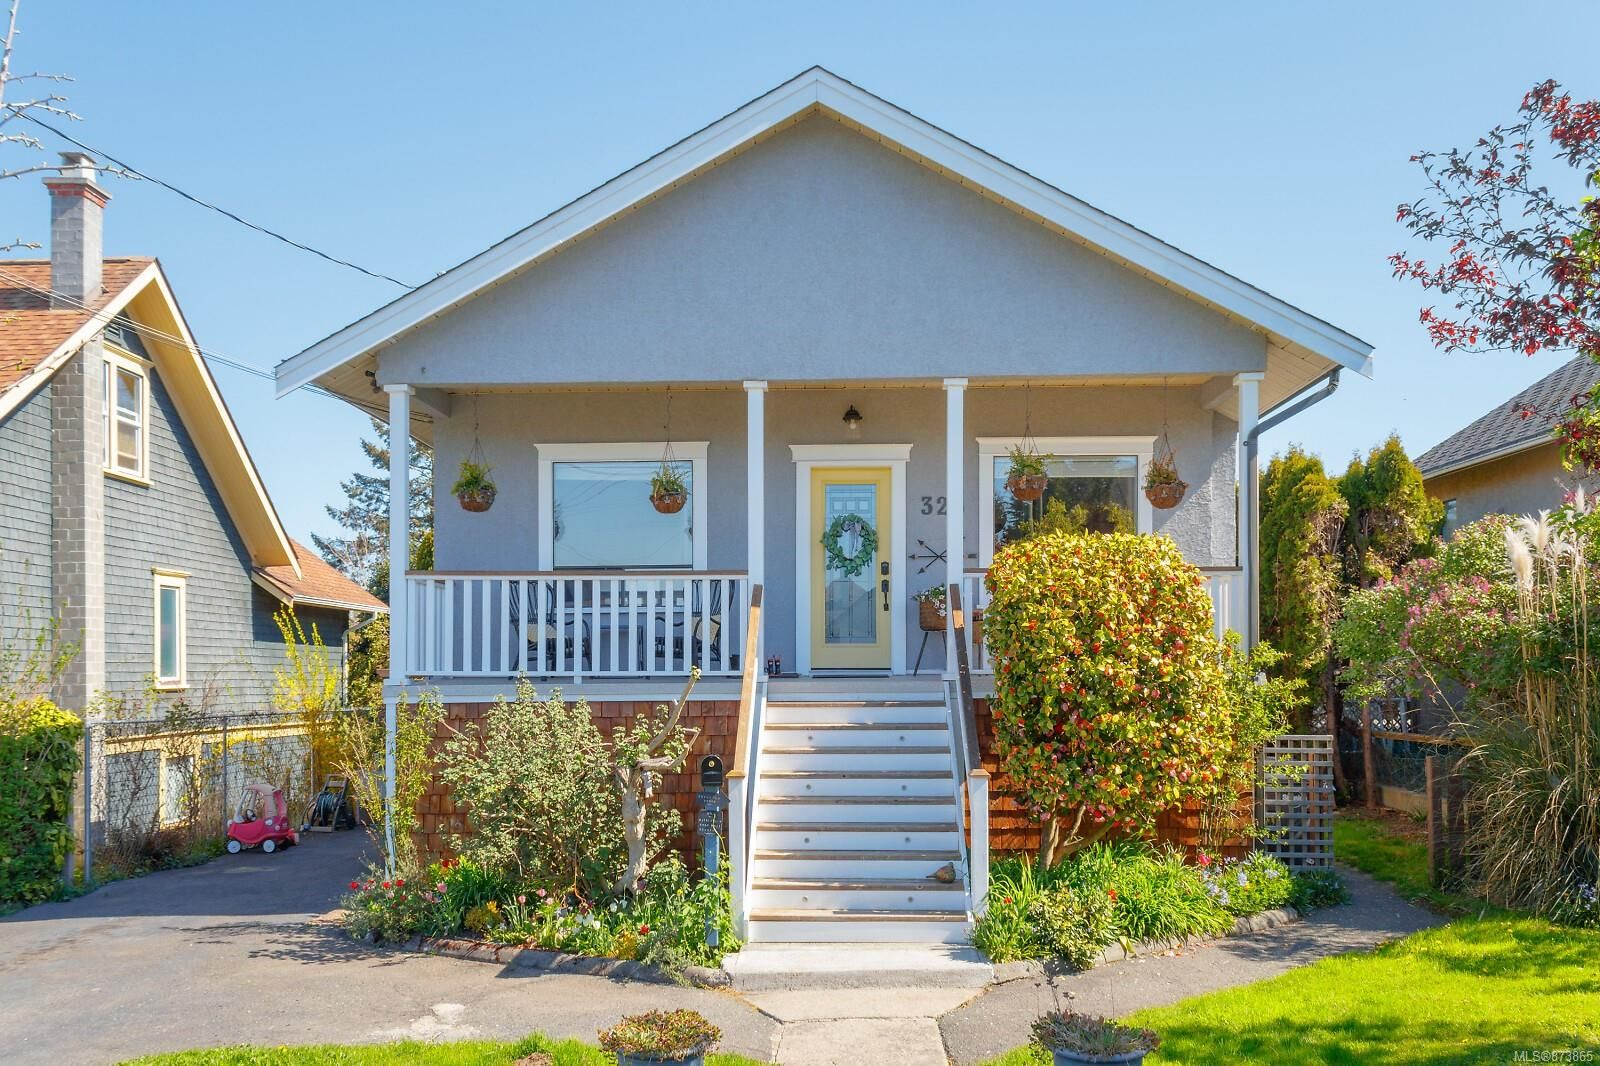 Main Photo: 326 Obed Ave in : SW Gorge House for sale (Saanich West)  : MLS®# 873865